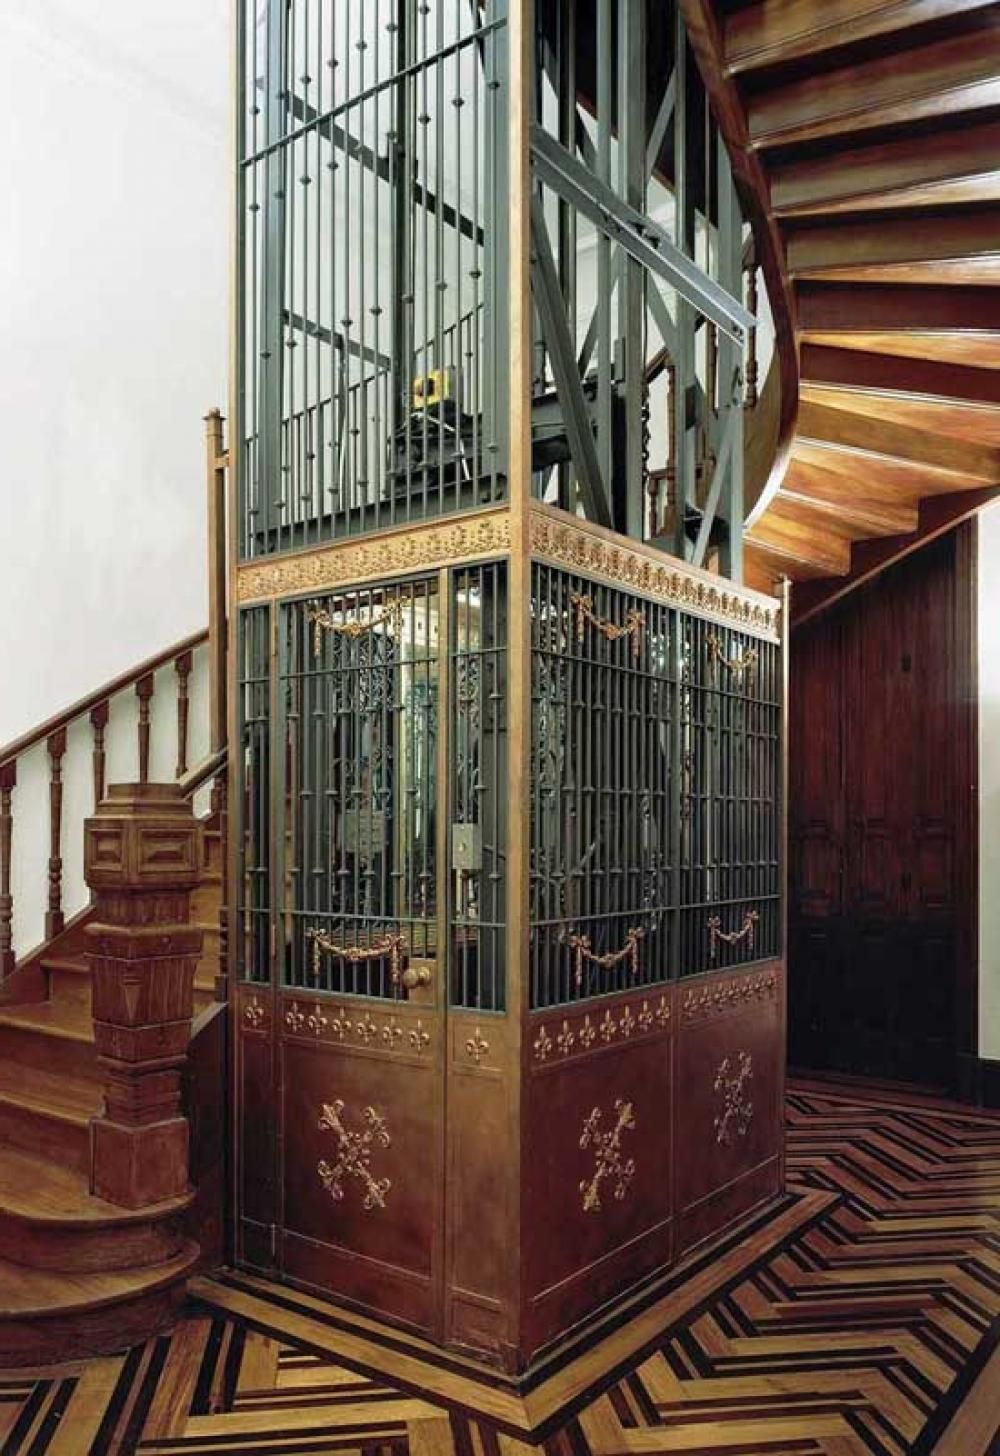 Unique House Look Old With Spiral Staircase Design In The